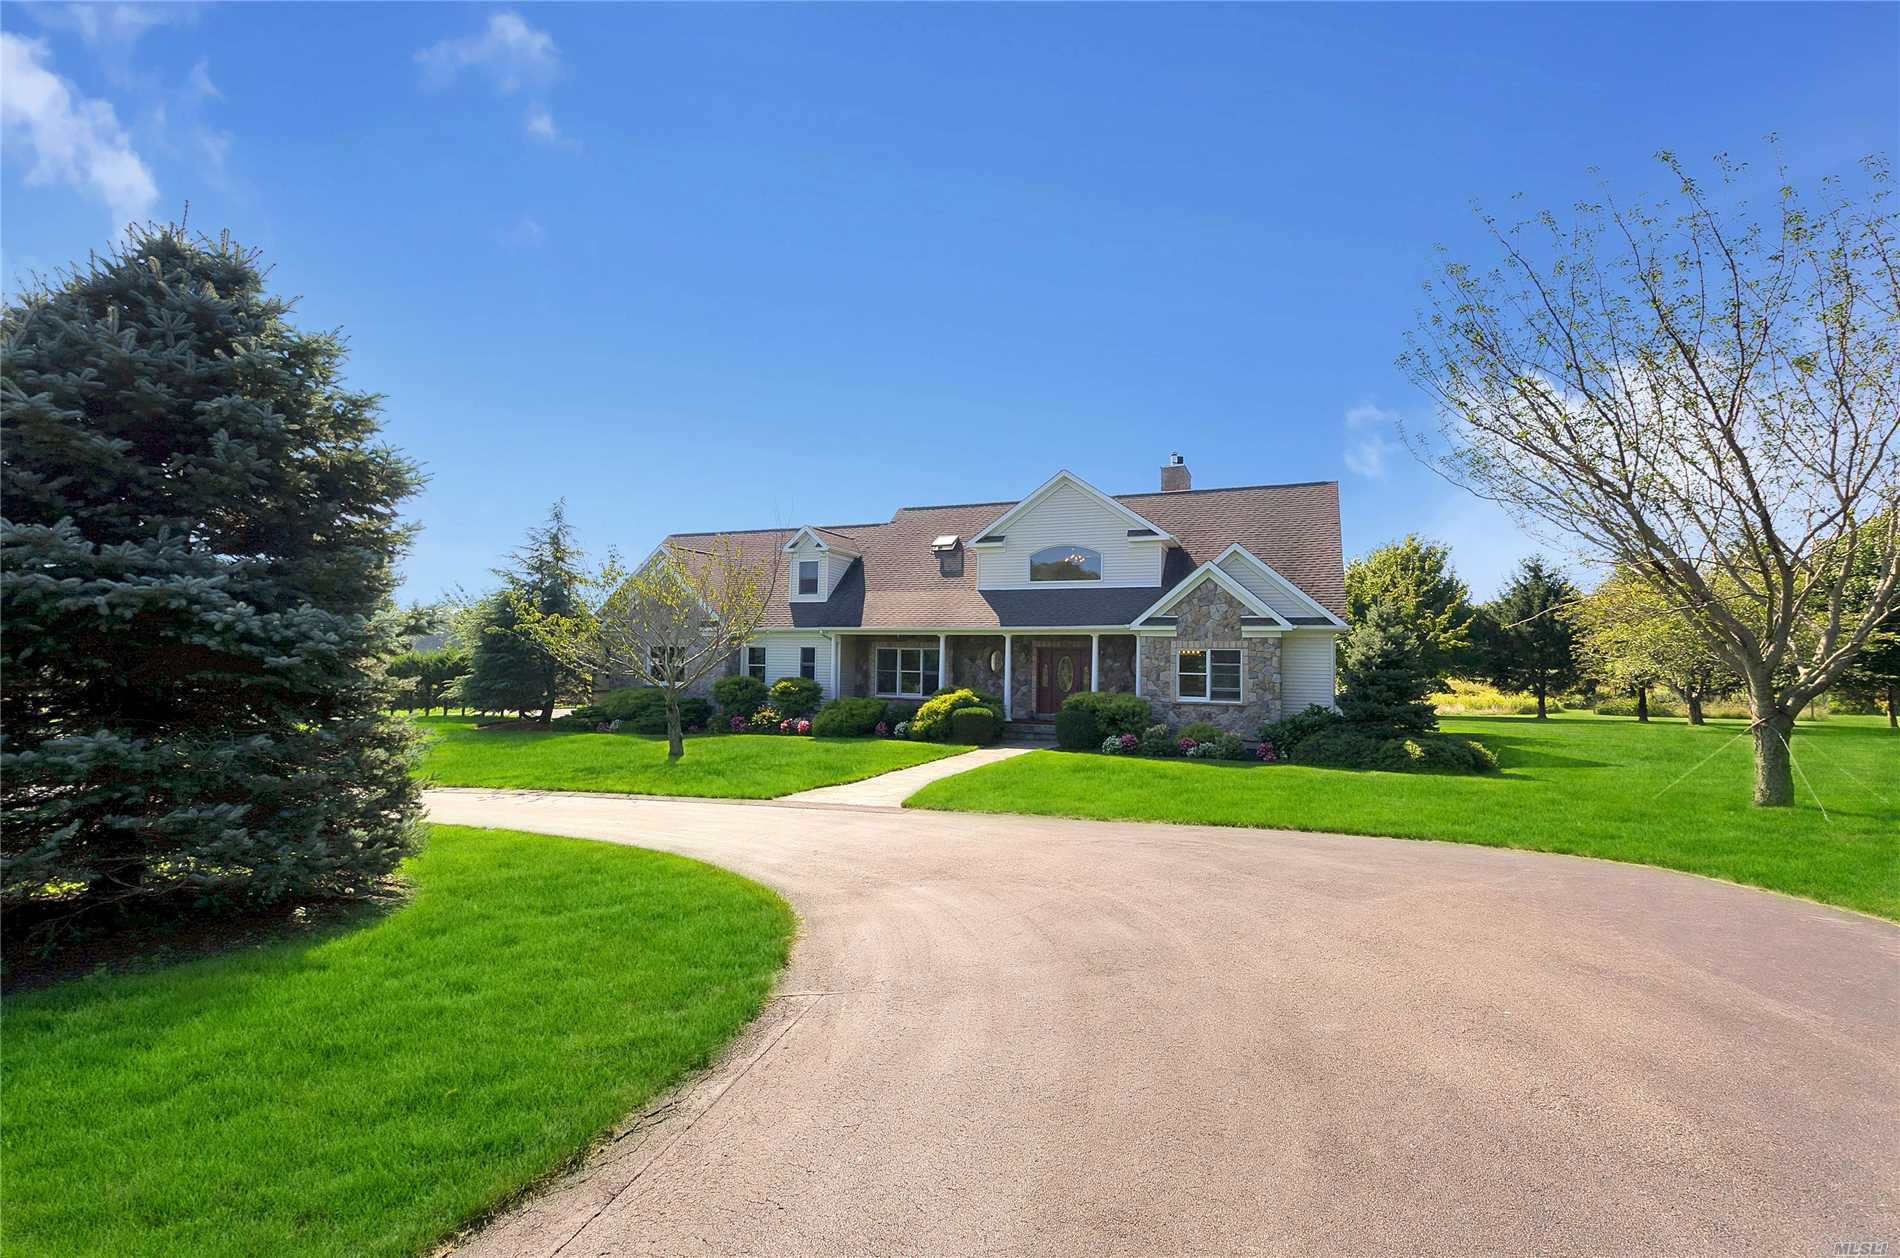 535 Lighthouse Rd - Southold, New York